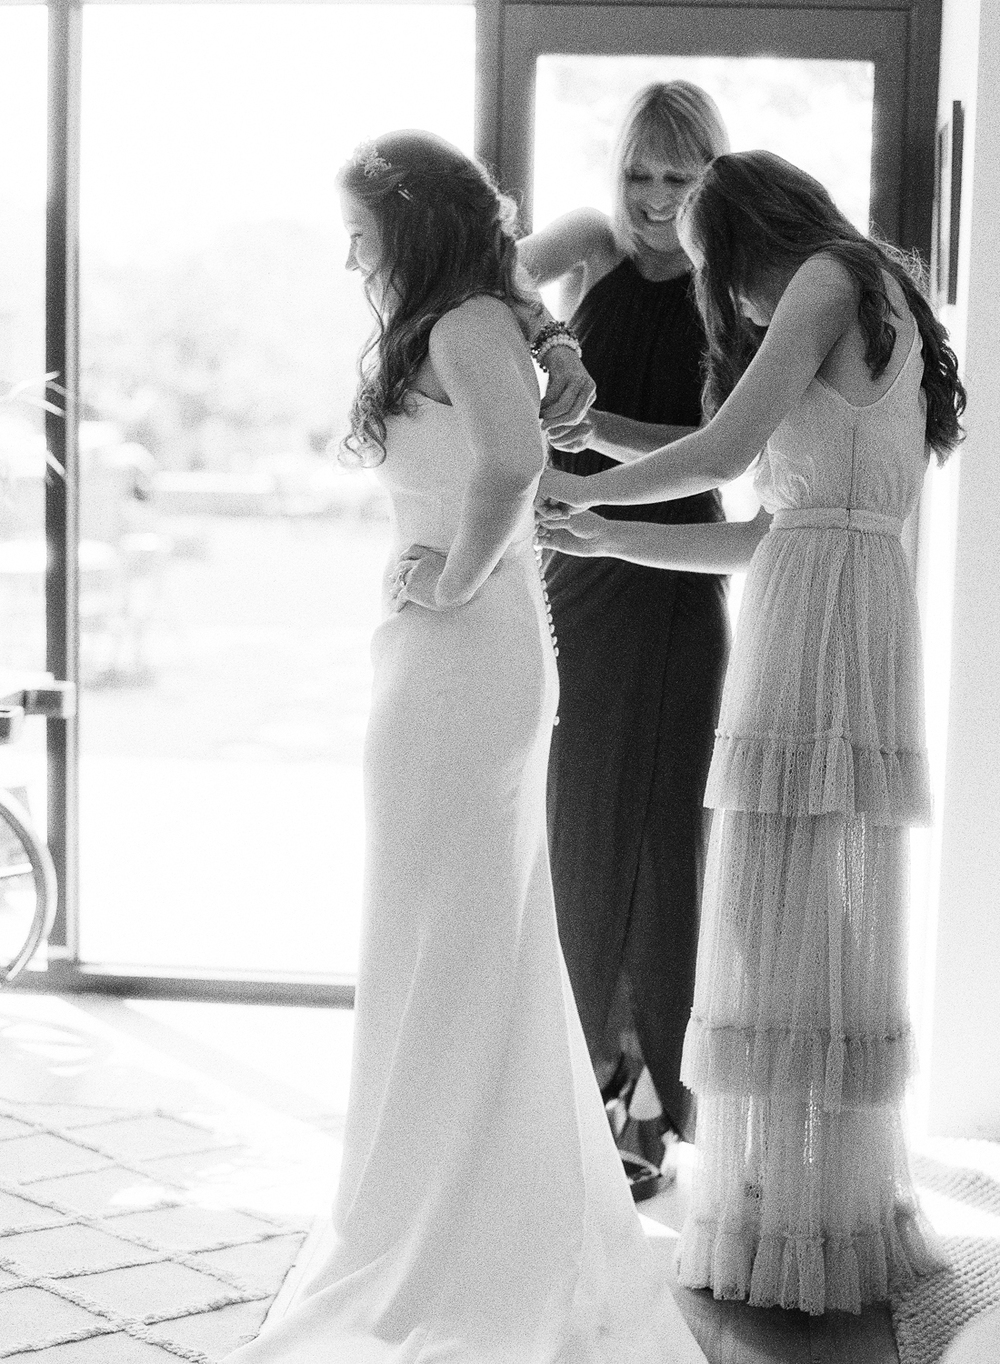 Tali's sister and mother lace up her simple, yet beautiful gown before the wedding; photo by Sylvie Gil